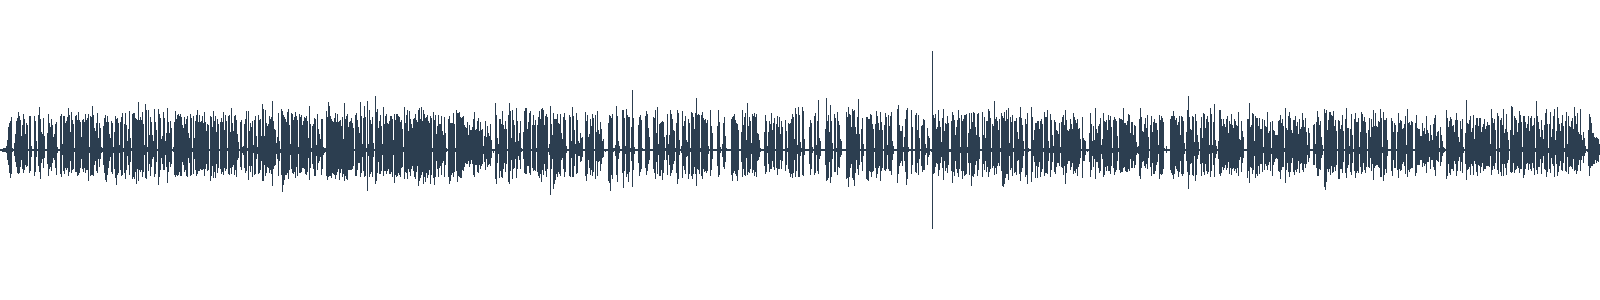 SPOMAĽ! waveform